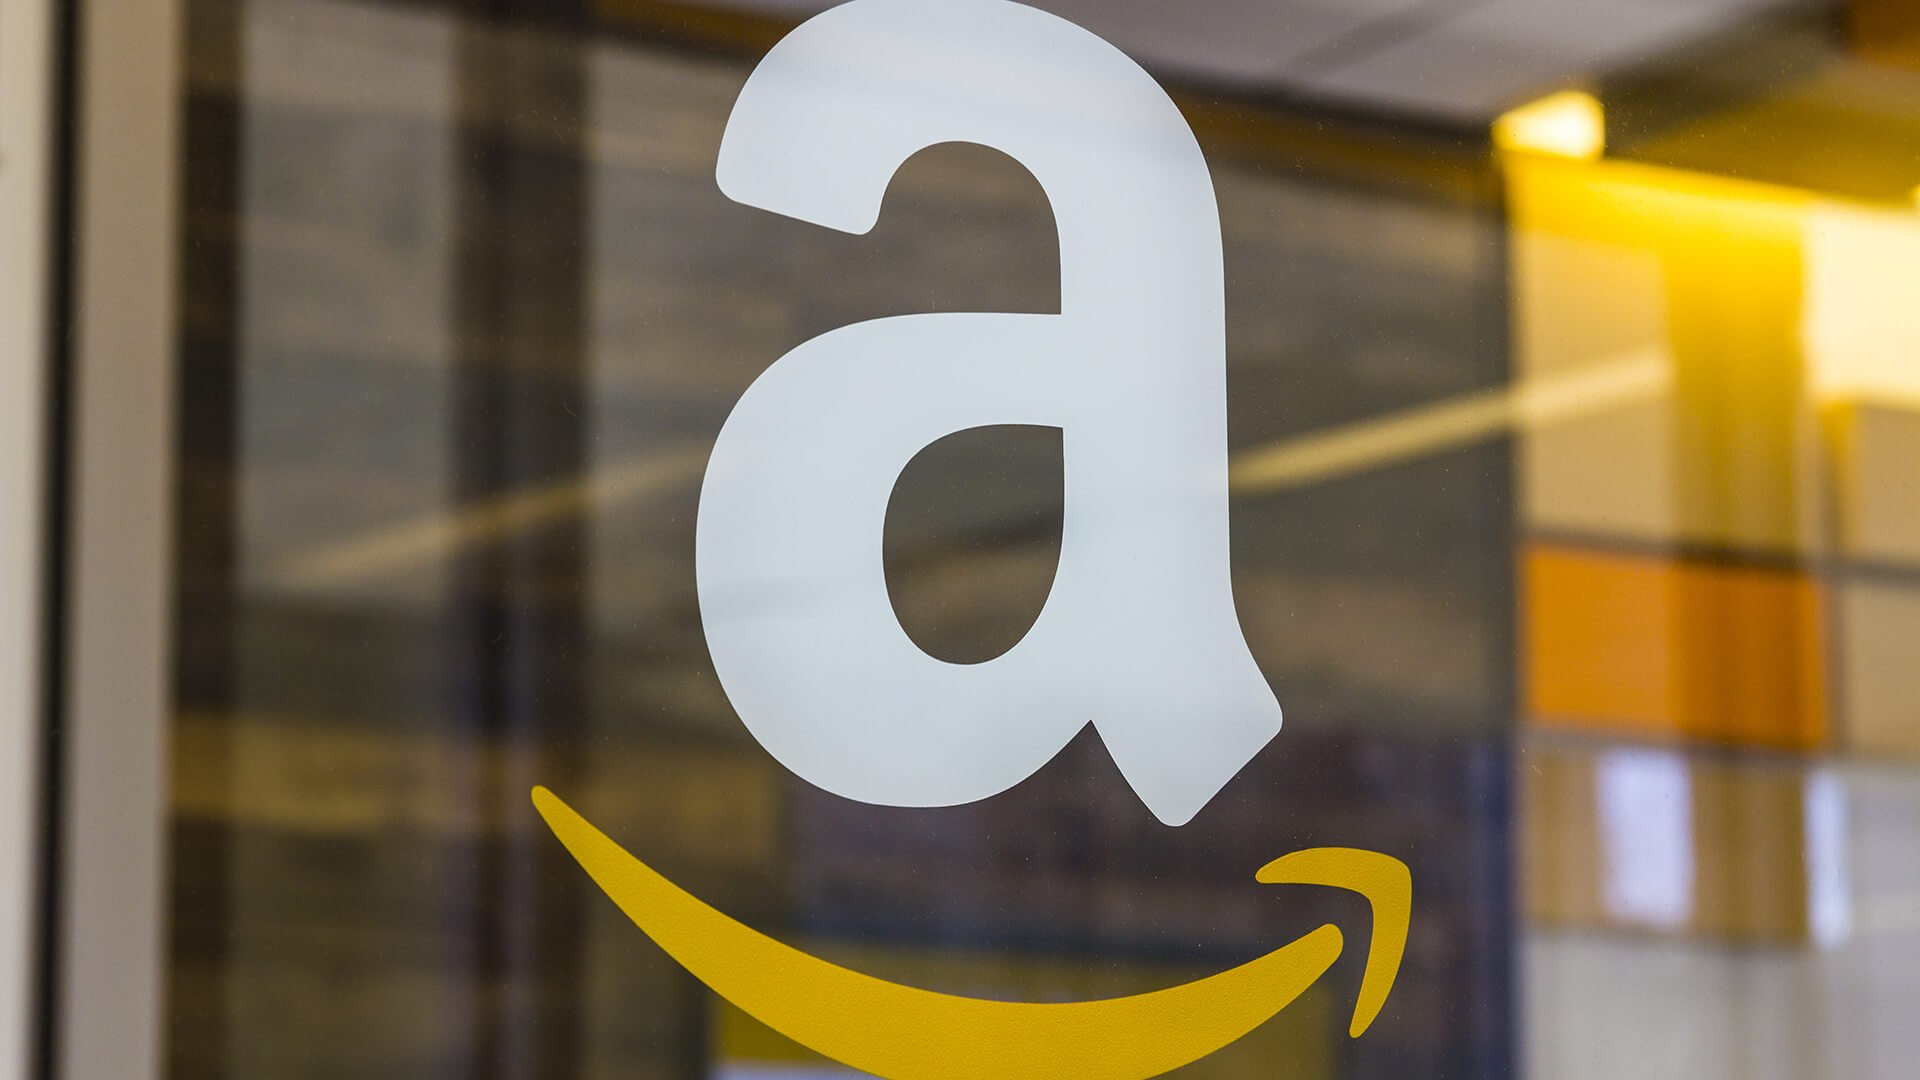 Google beats Amazon for product-search reach, but rival sees greater loyalty